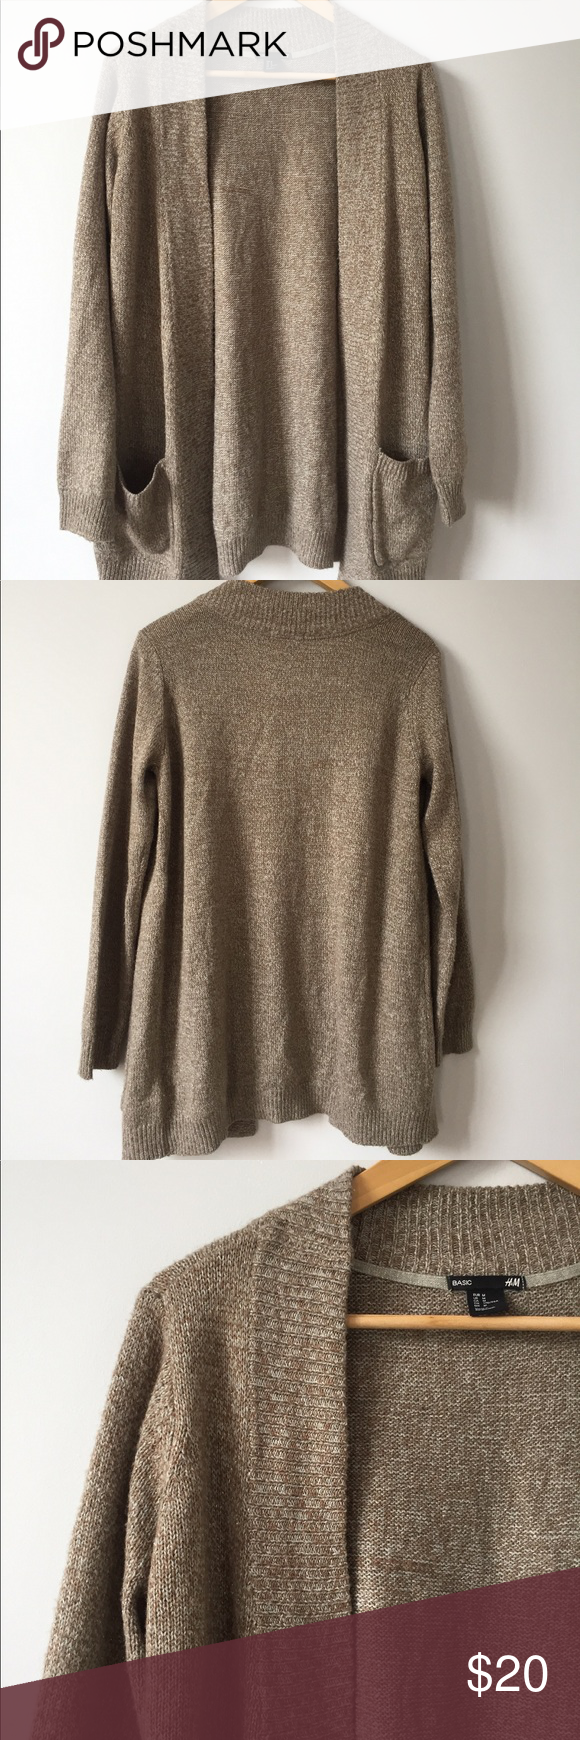 H&M Brown Open Front Cardigan Sweater Size M | Open front cardigan ...